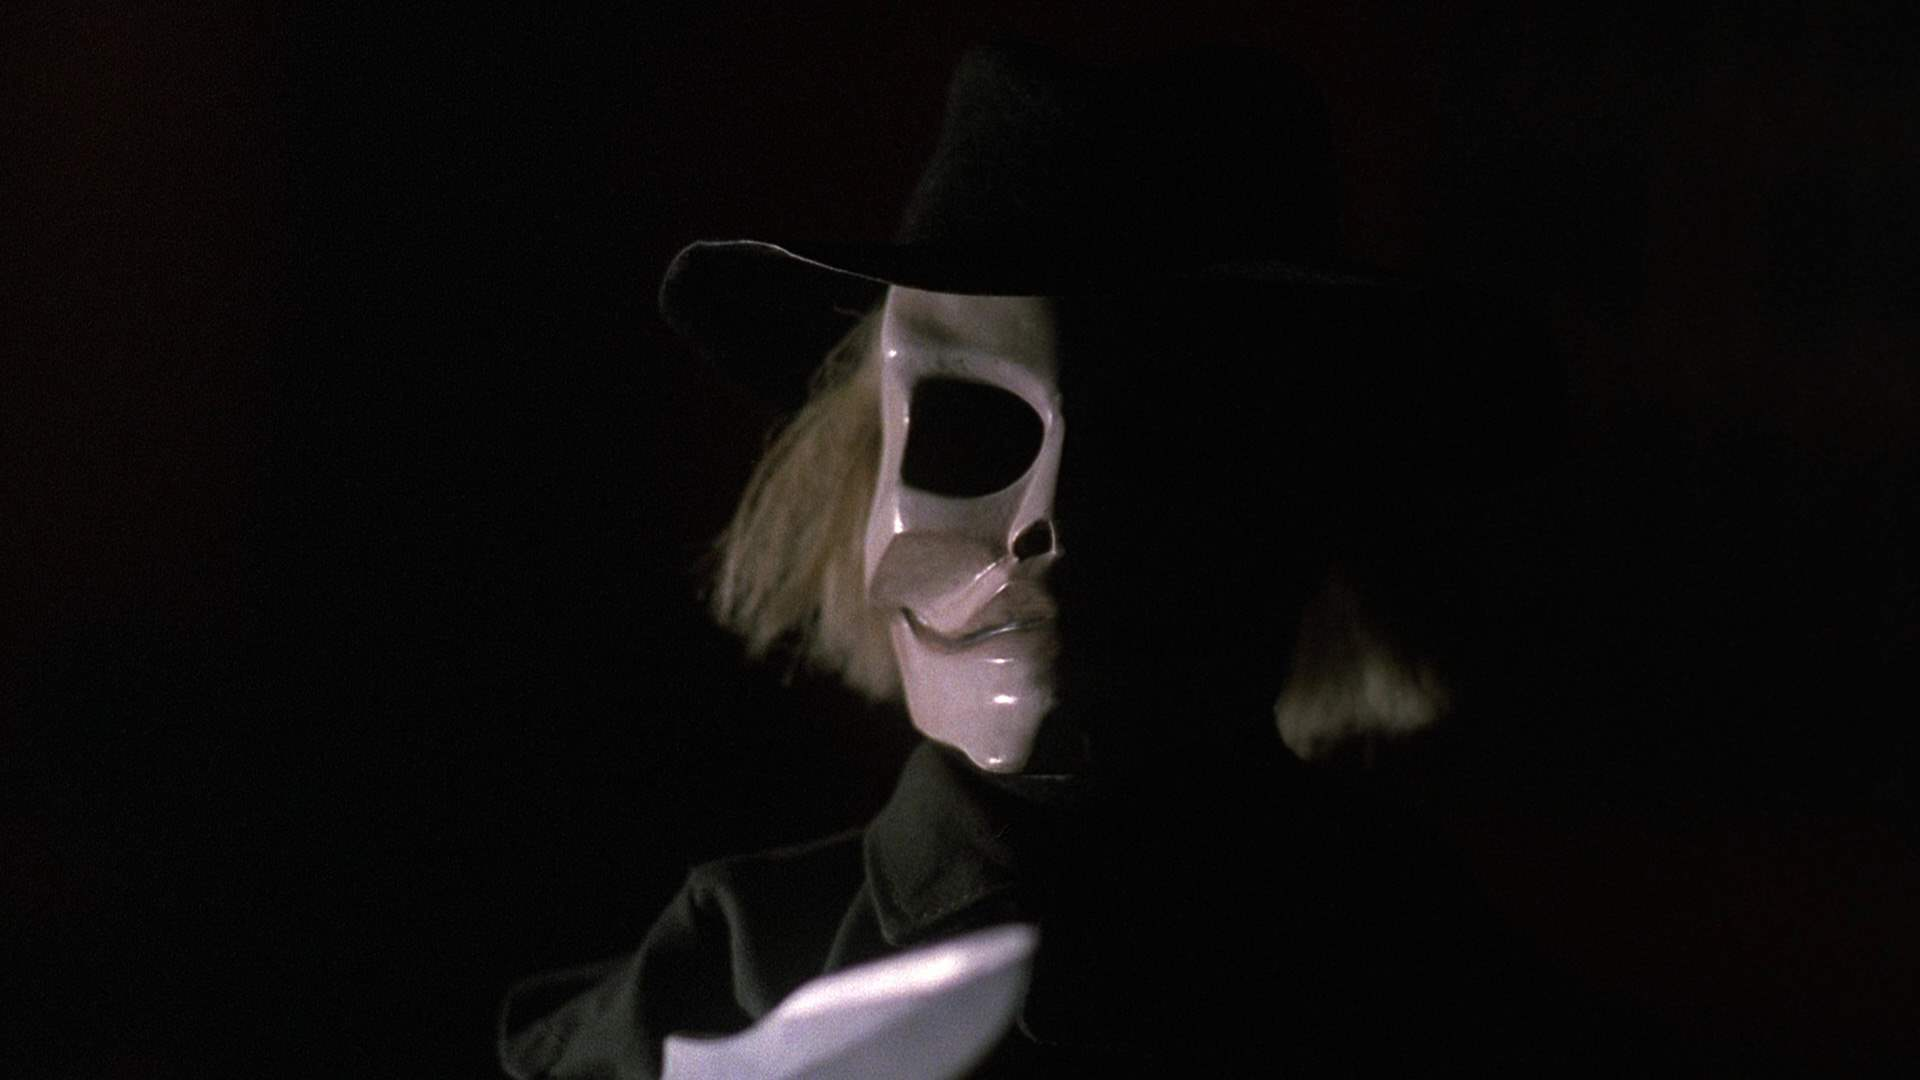 Blade in Puppet Master III